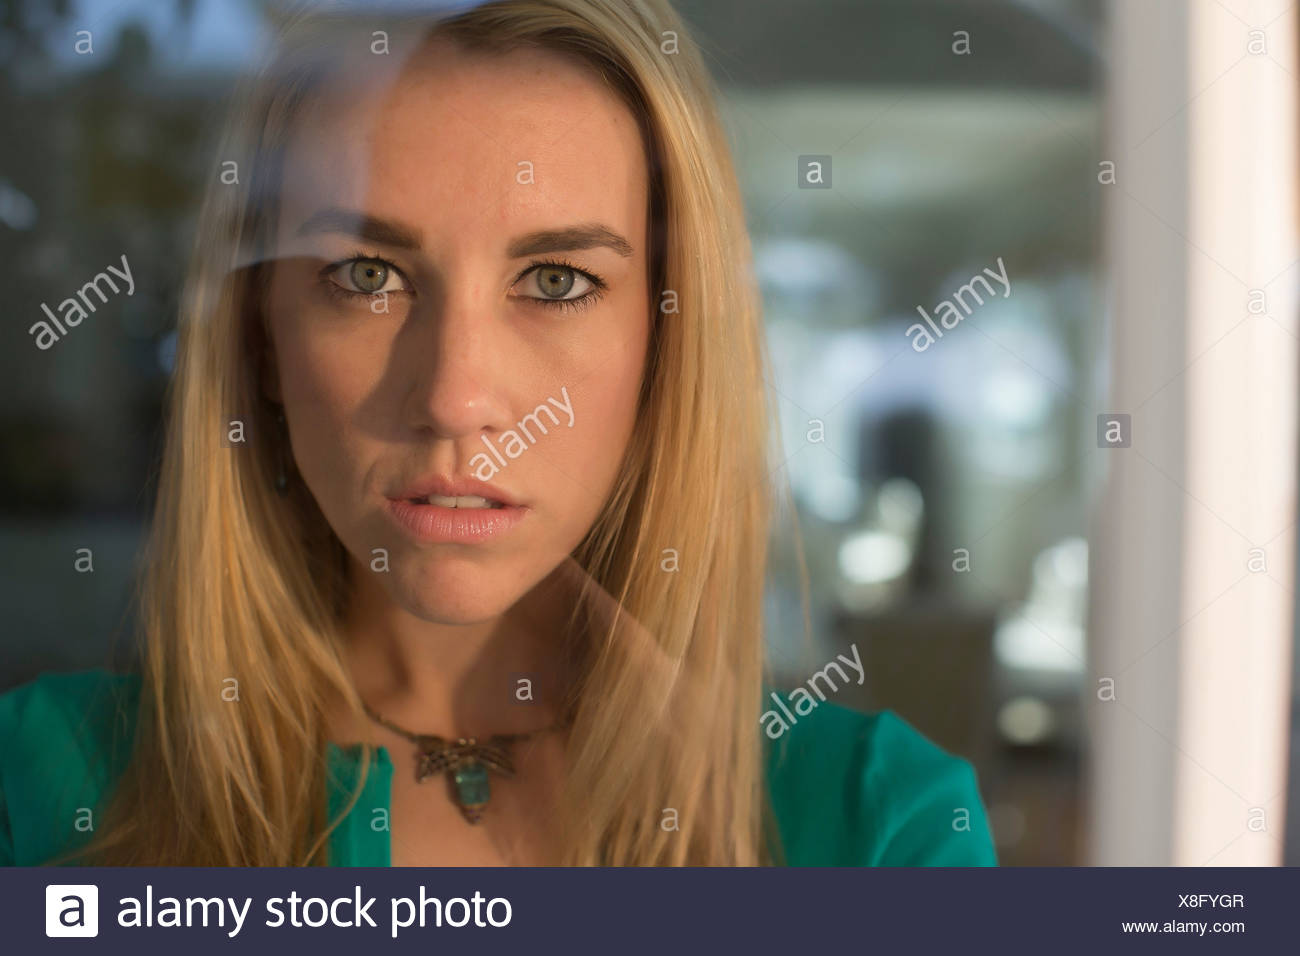 Portrait of young woman staring through window - Stock Image